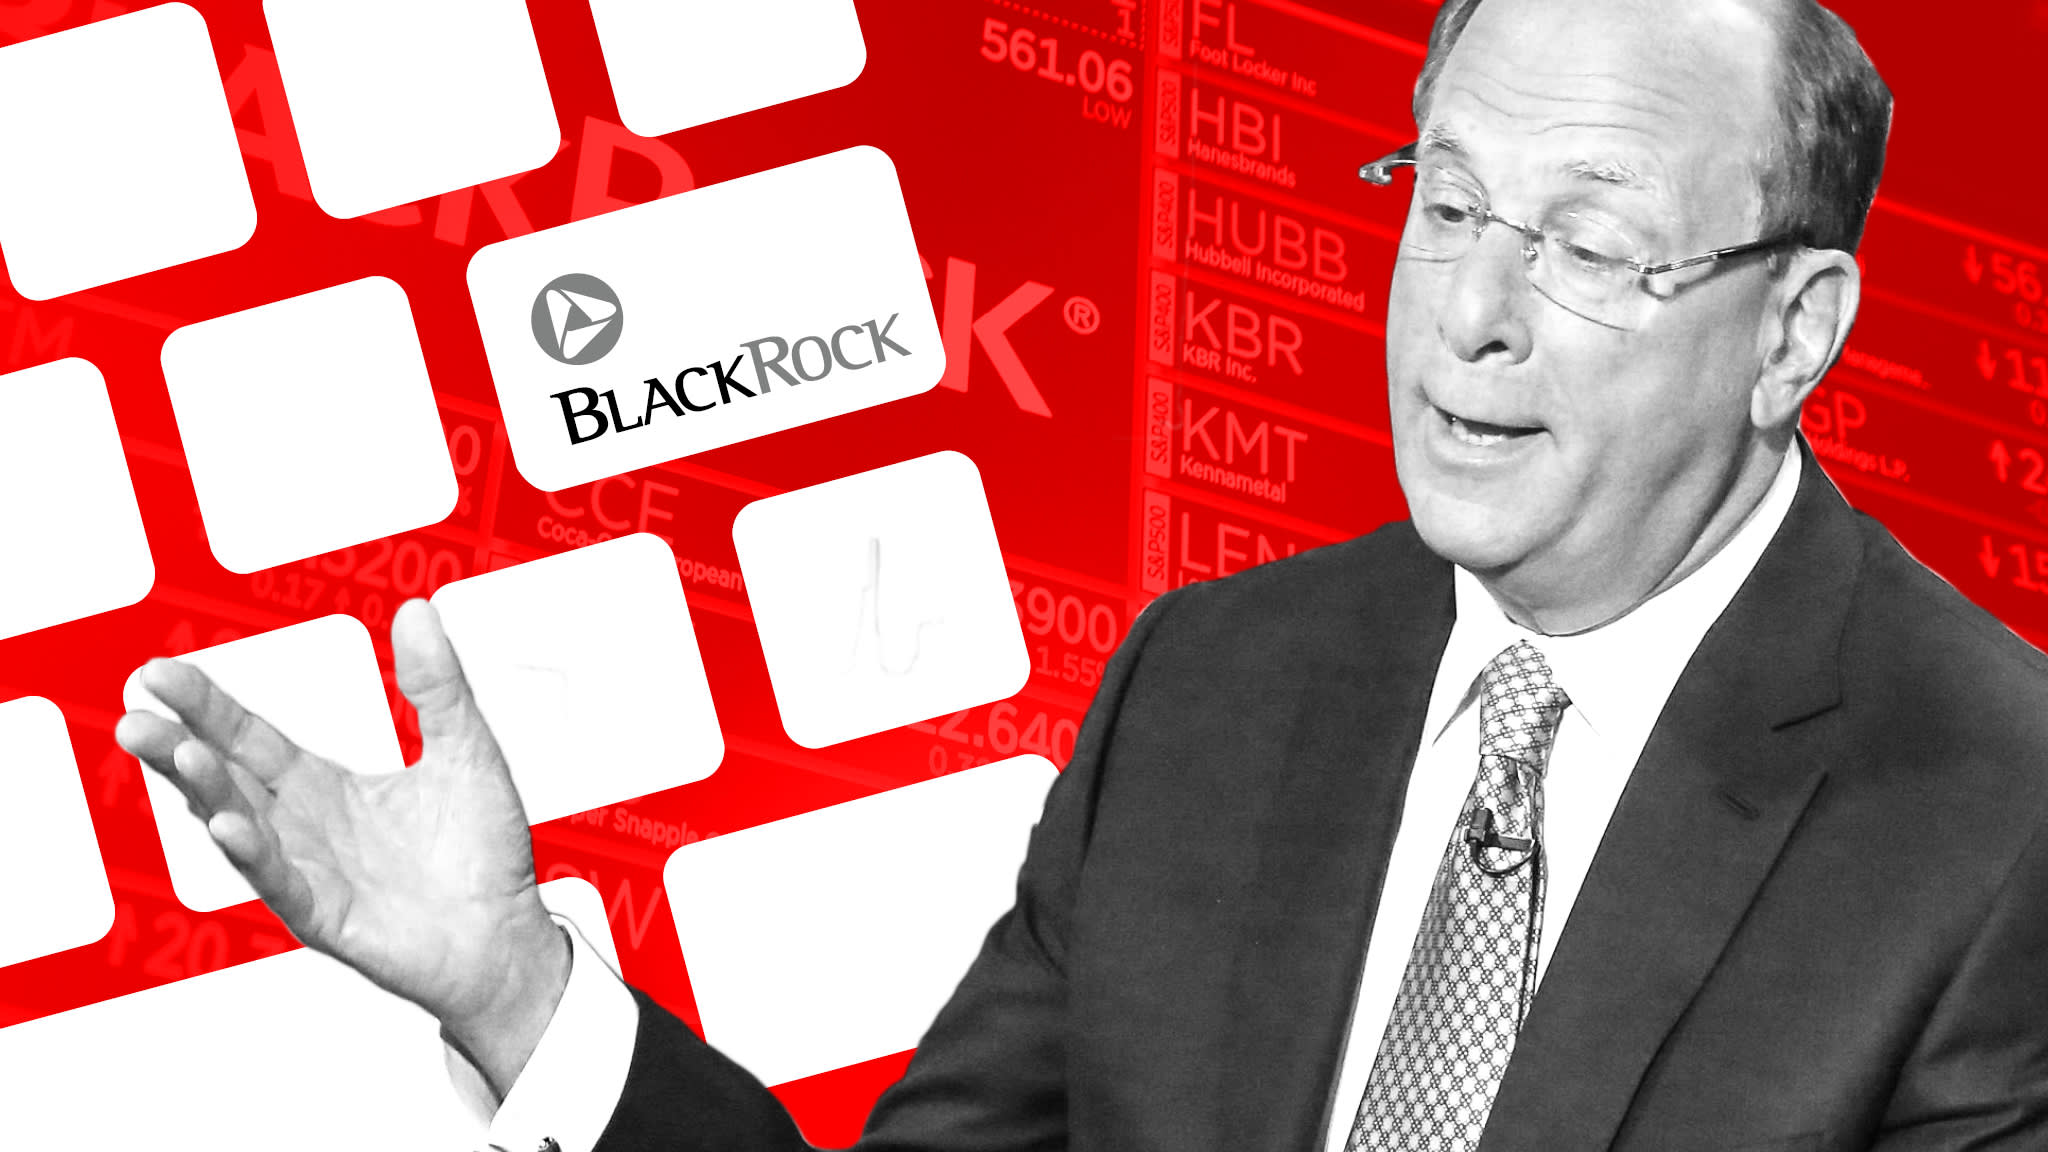 Will BlackRock's algorithms beat the fund managers?